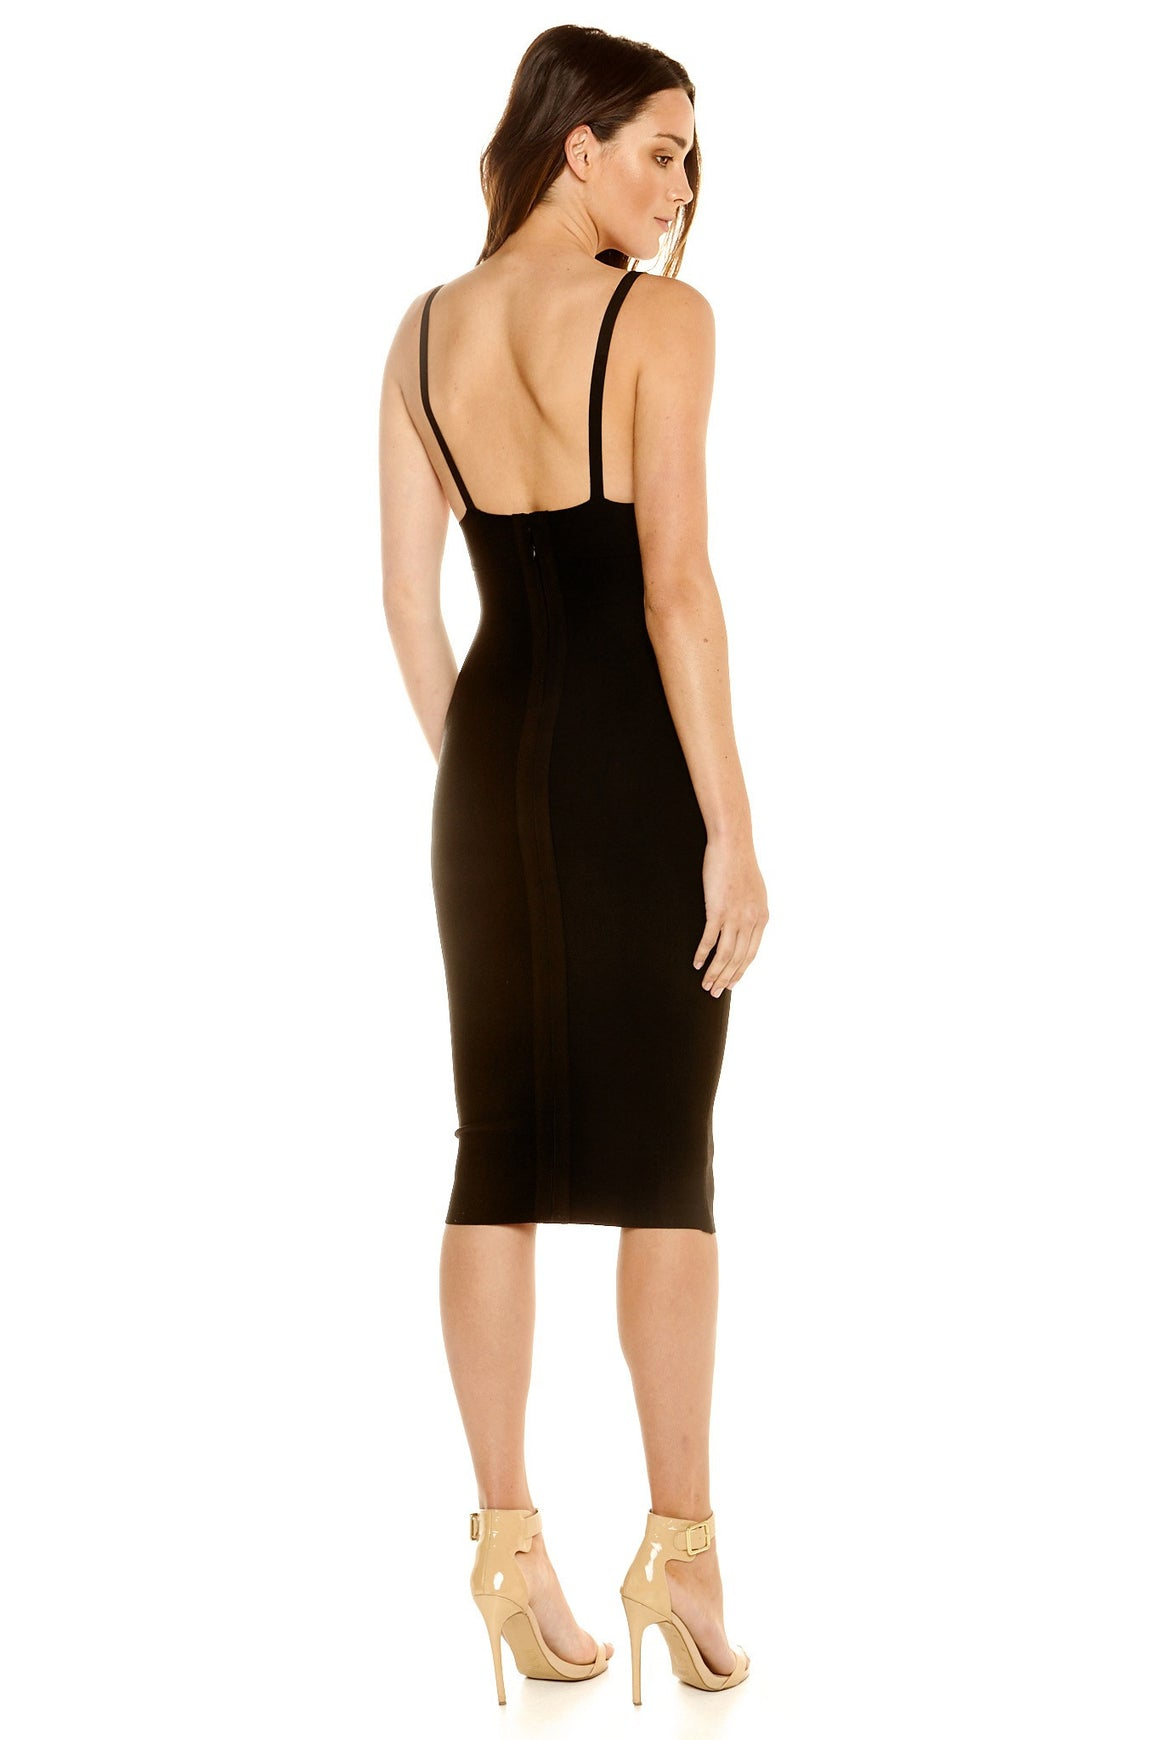 Portia V-Neck Midi Bandage Dress - Black